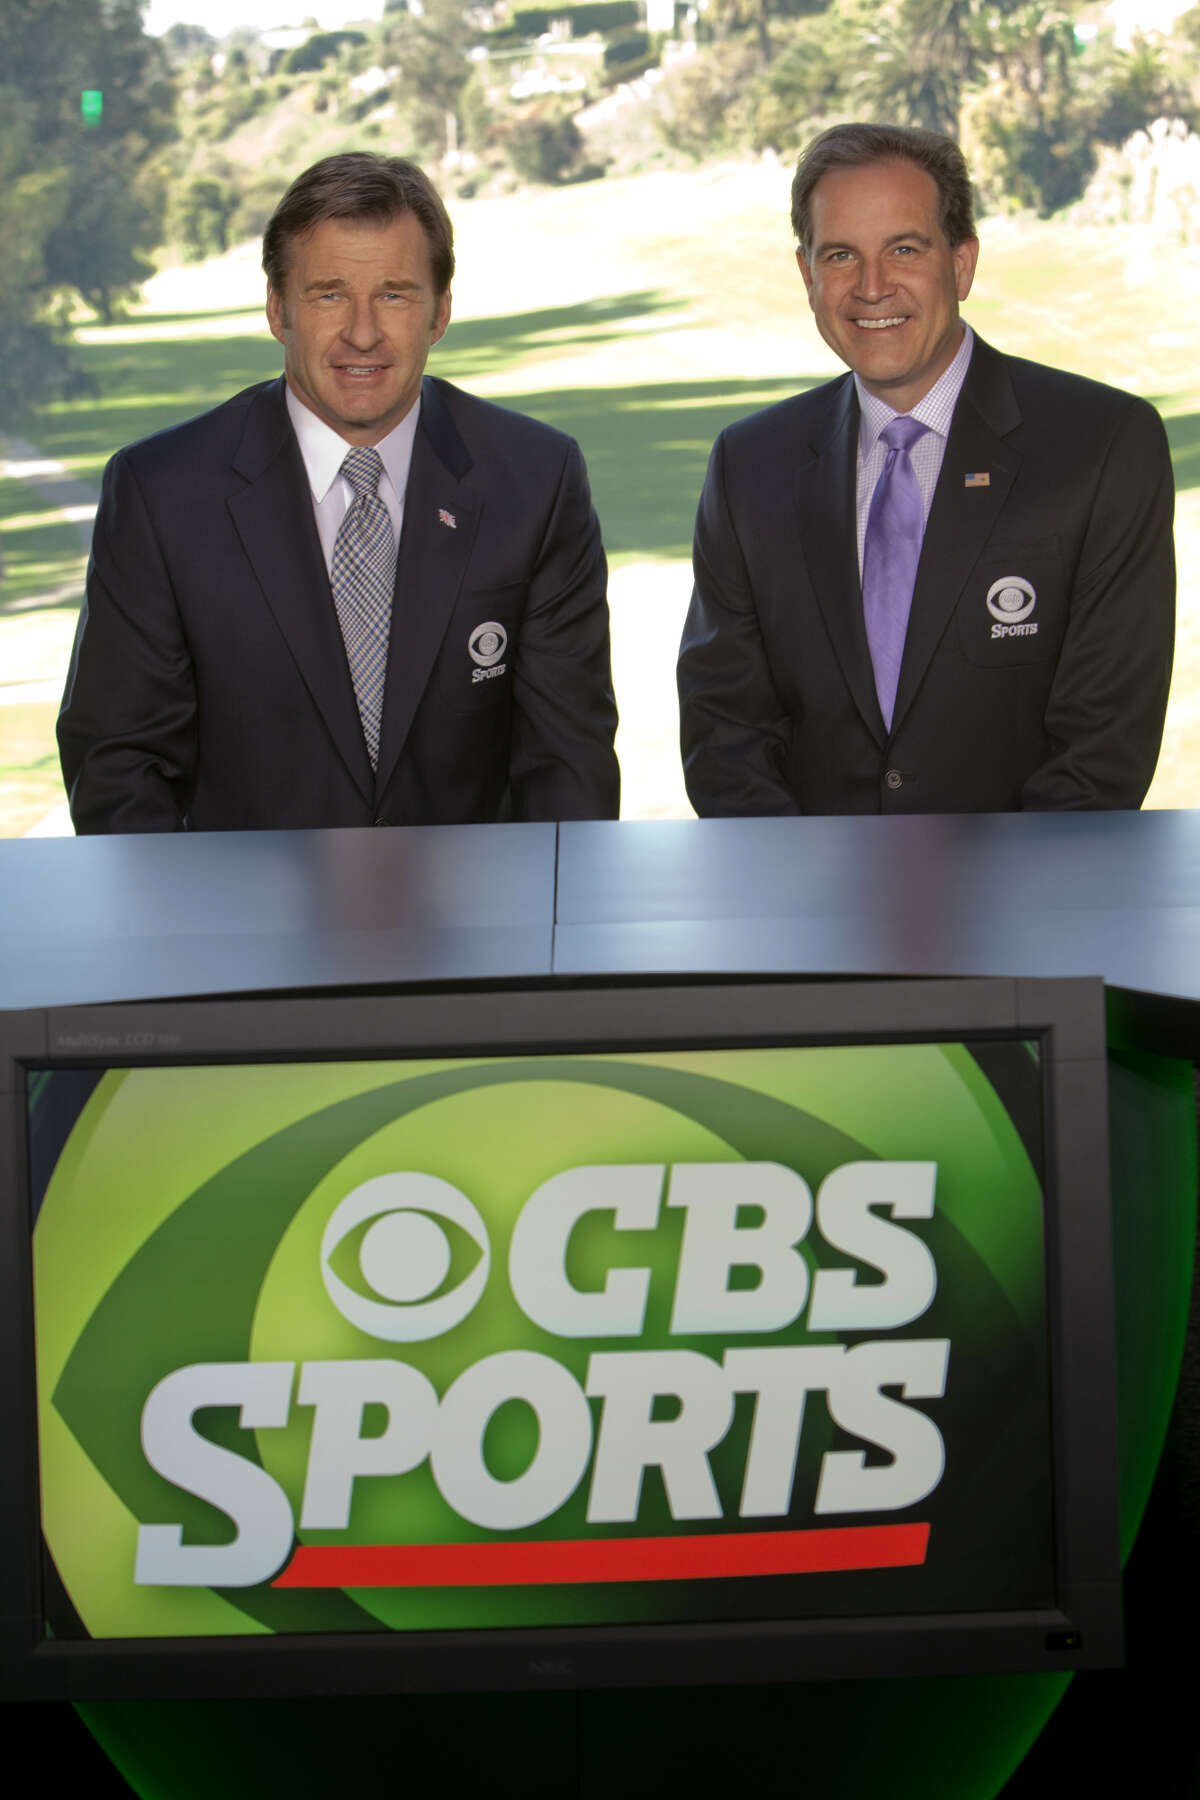 Jim Nantz and Nick Faldo, partners in the 18th tower at Augusta National for the Masters. (Monty Brinton / CBS)